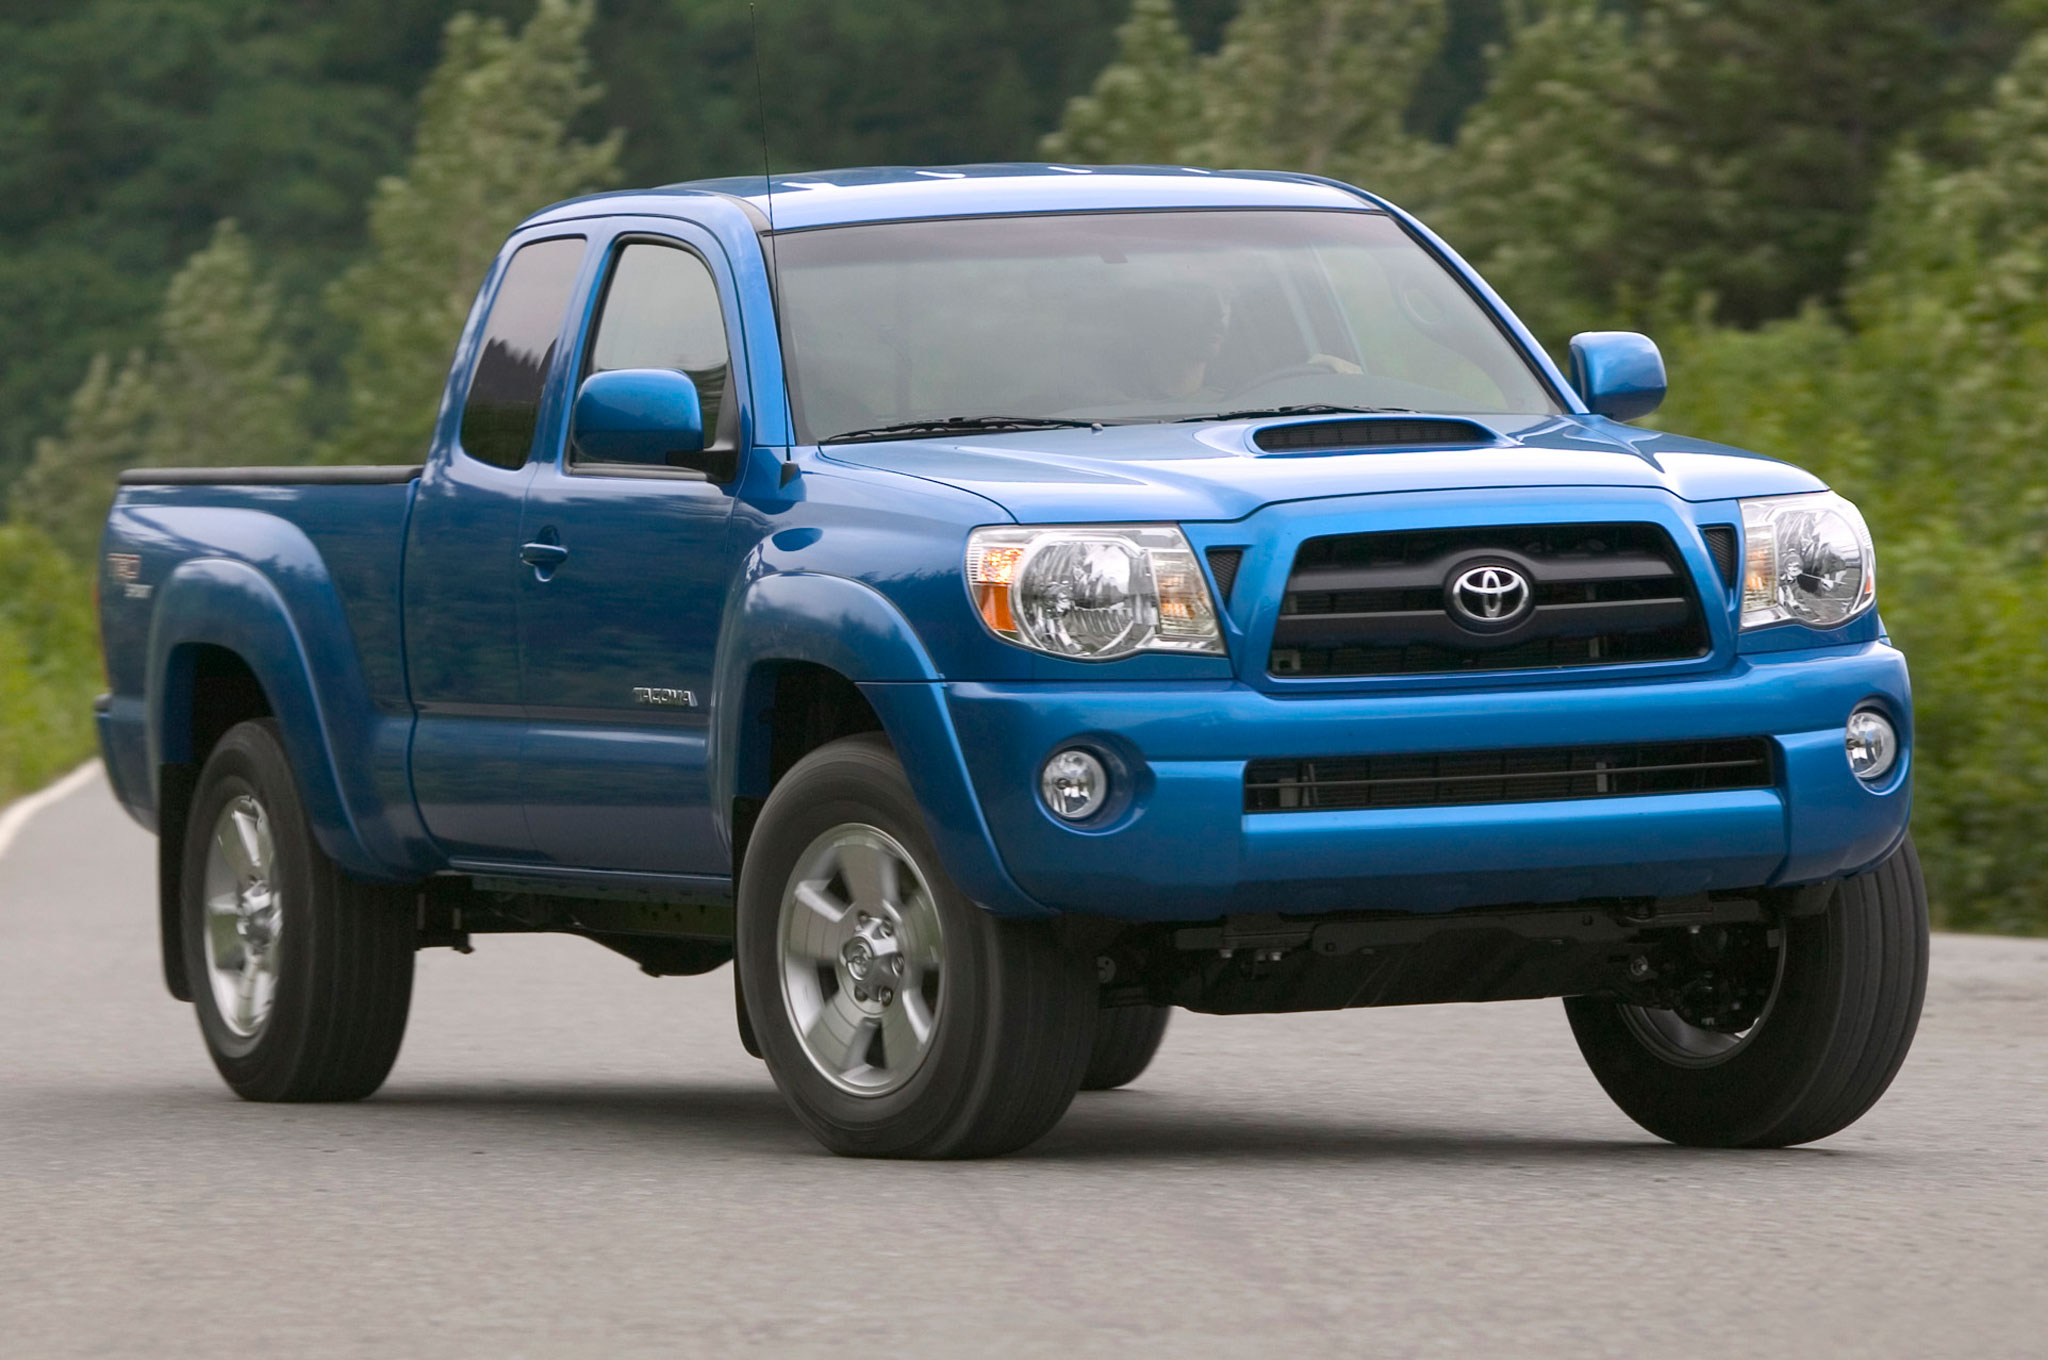 HQ Toyota Tacoma Wallpapers | File 335.63Kb